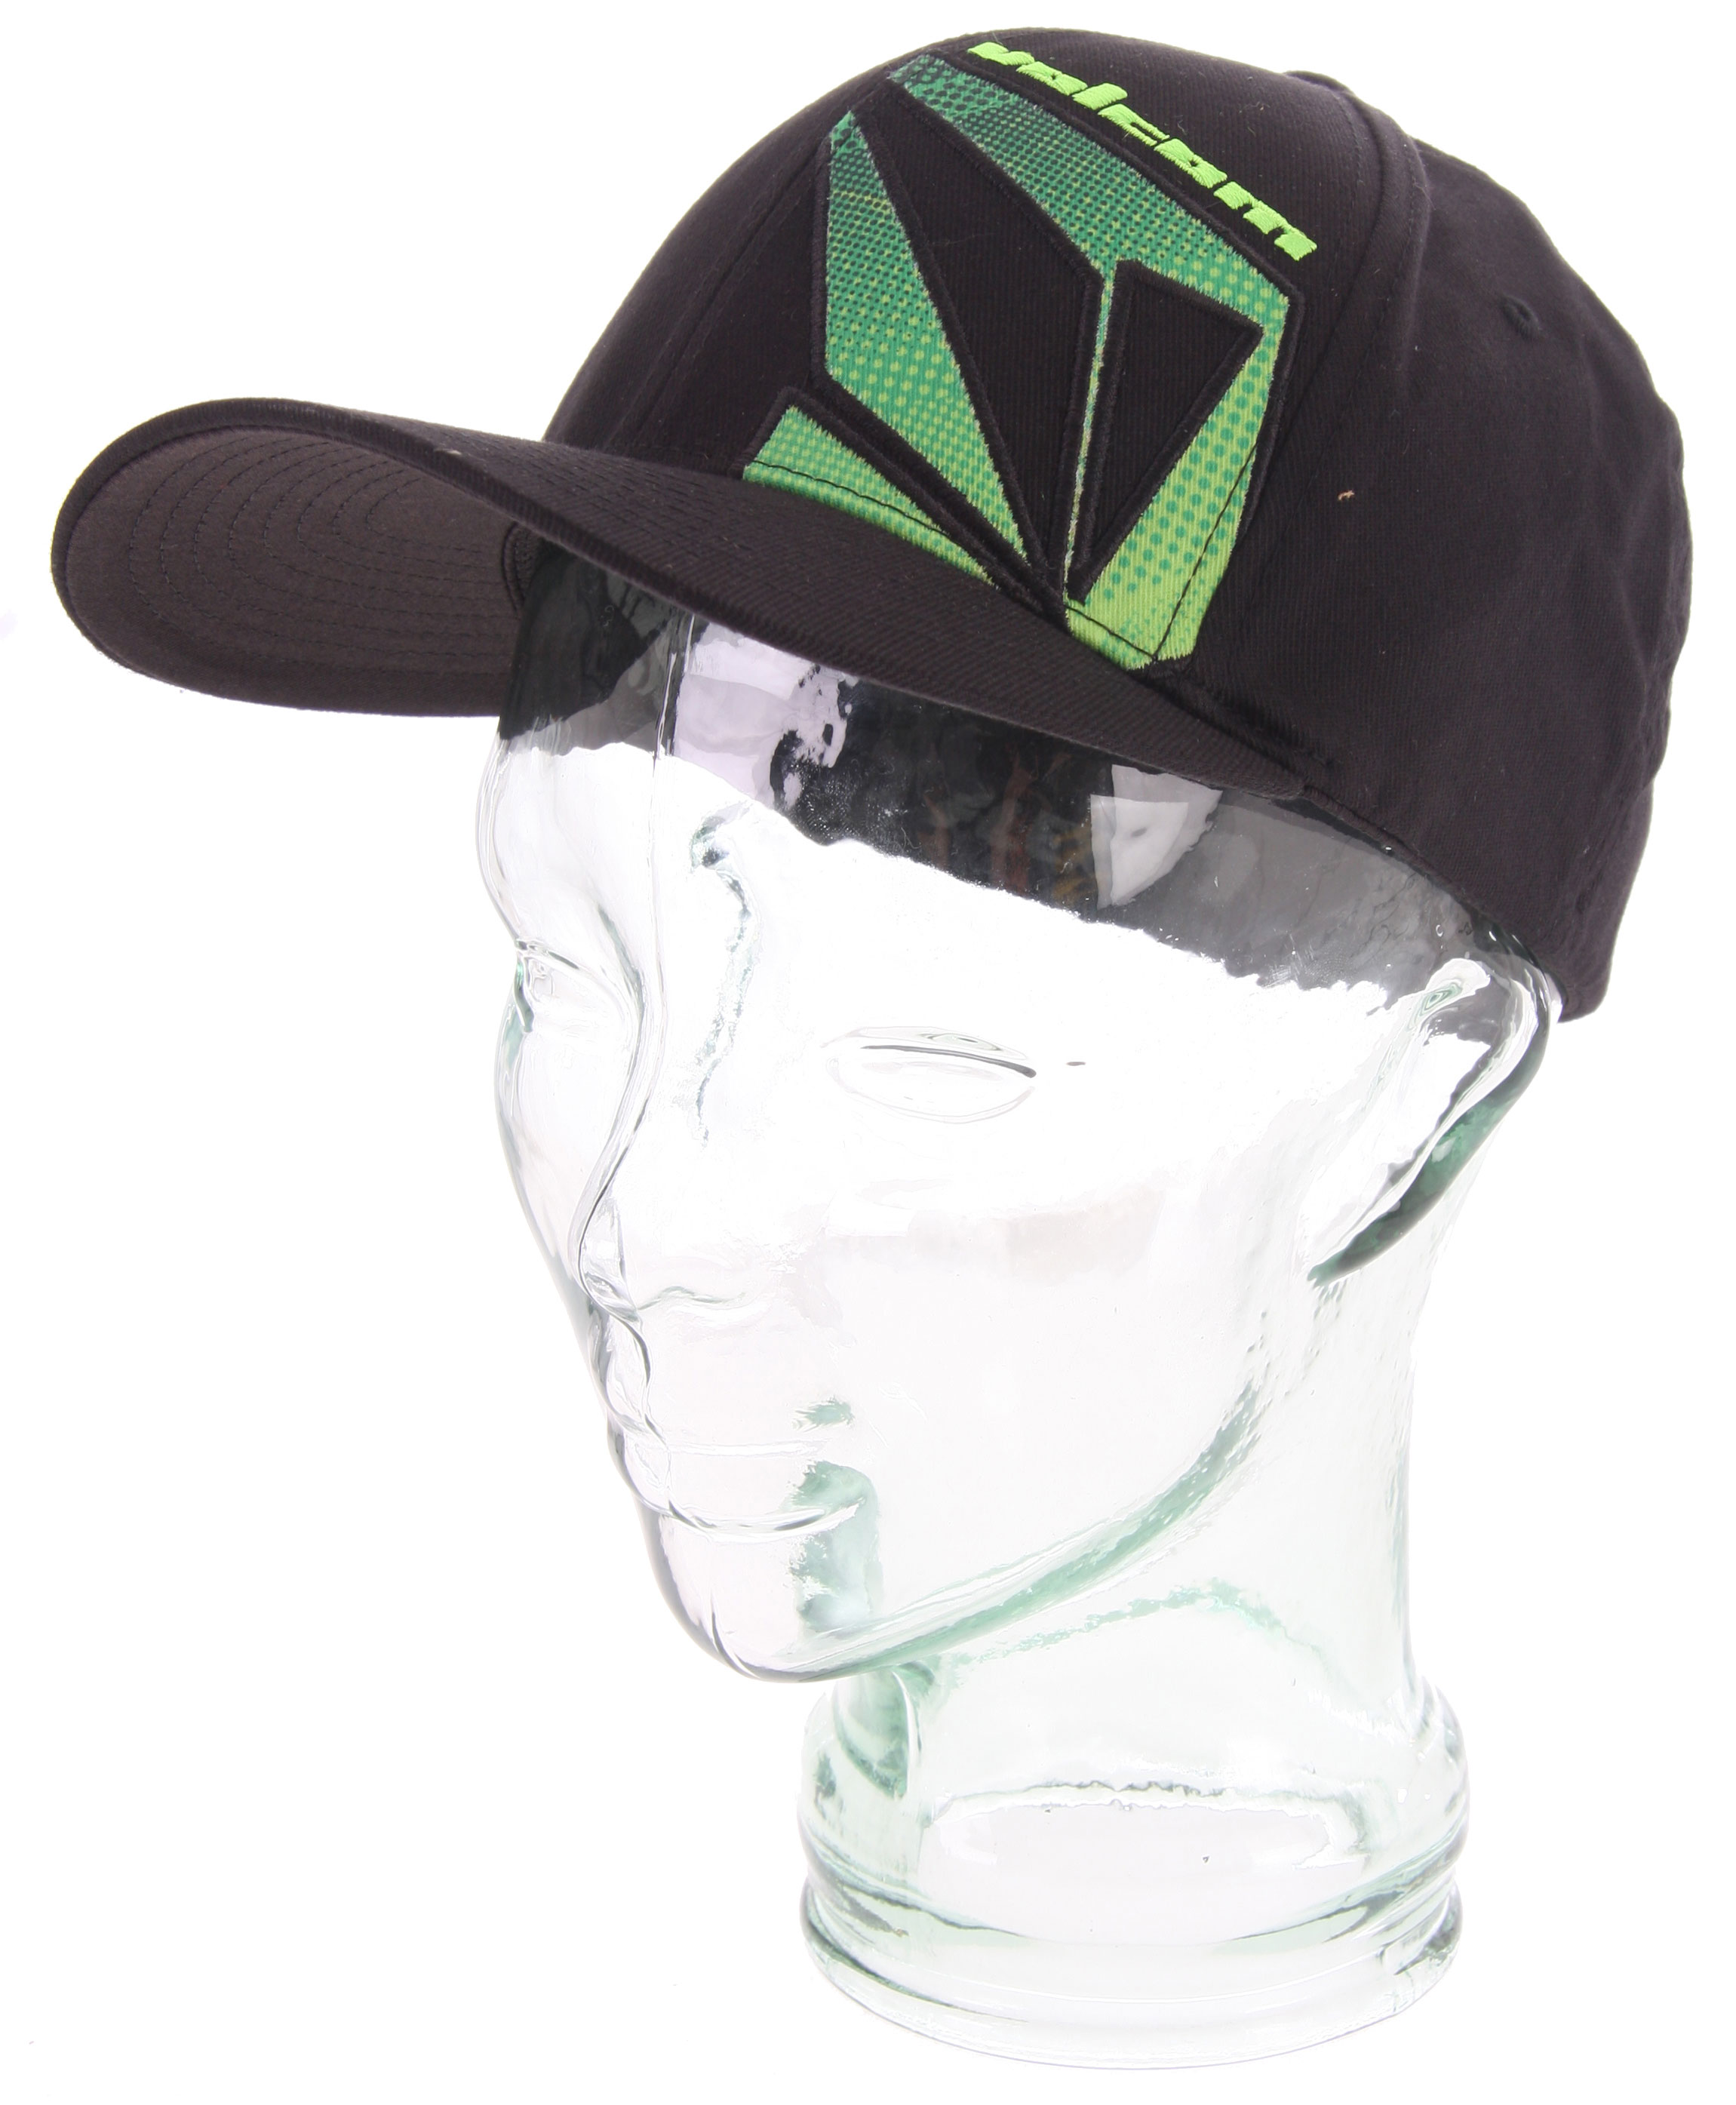 Surf Key Features of the Volcom The Alt Transplant 6277 Hat: 6 Panel 6277 Flexfit Hat 2-Color 'Volcom/Stone' Applique/Embroidery 63% Polyester/34% Cotton/3% Elastane - $17.95